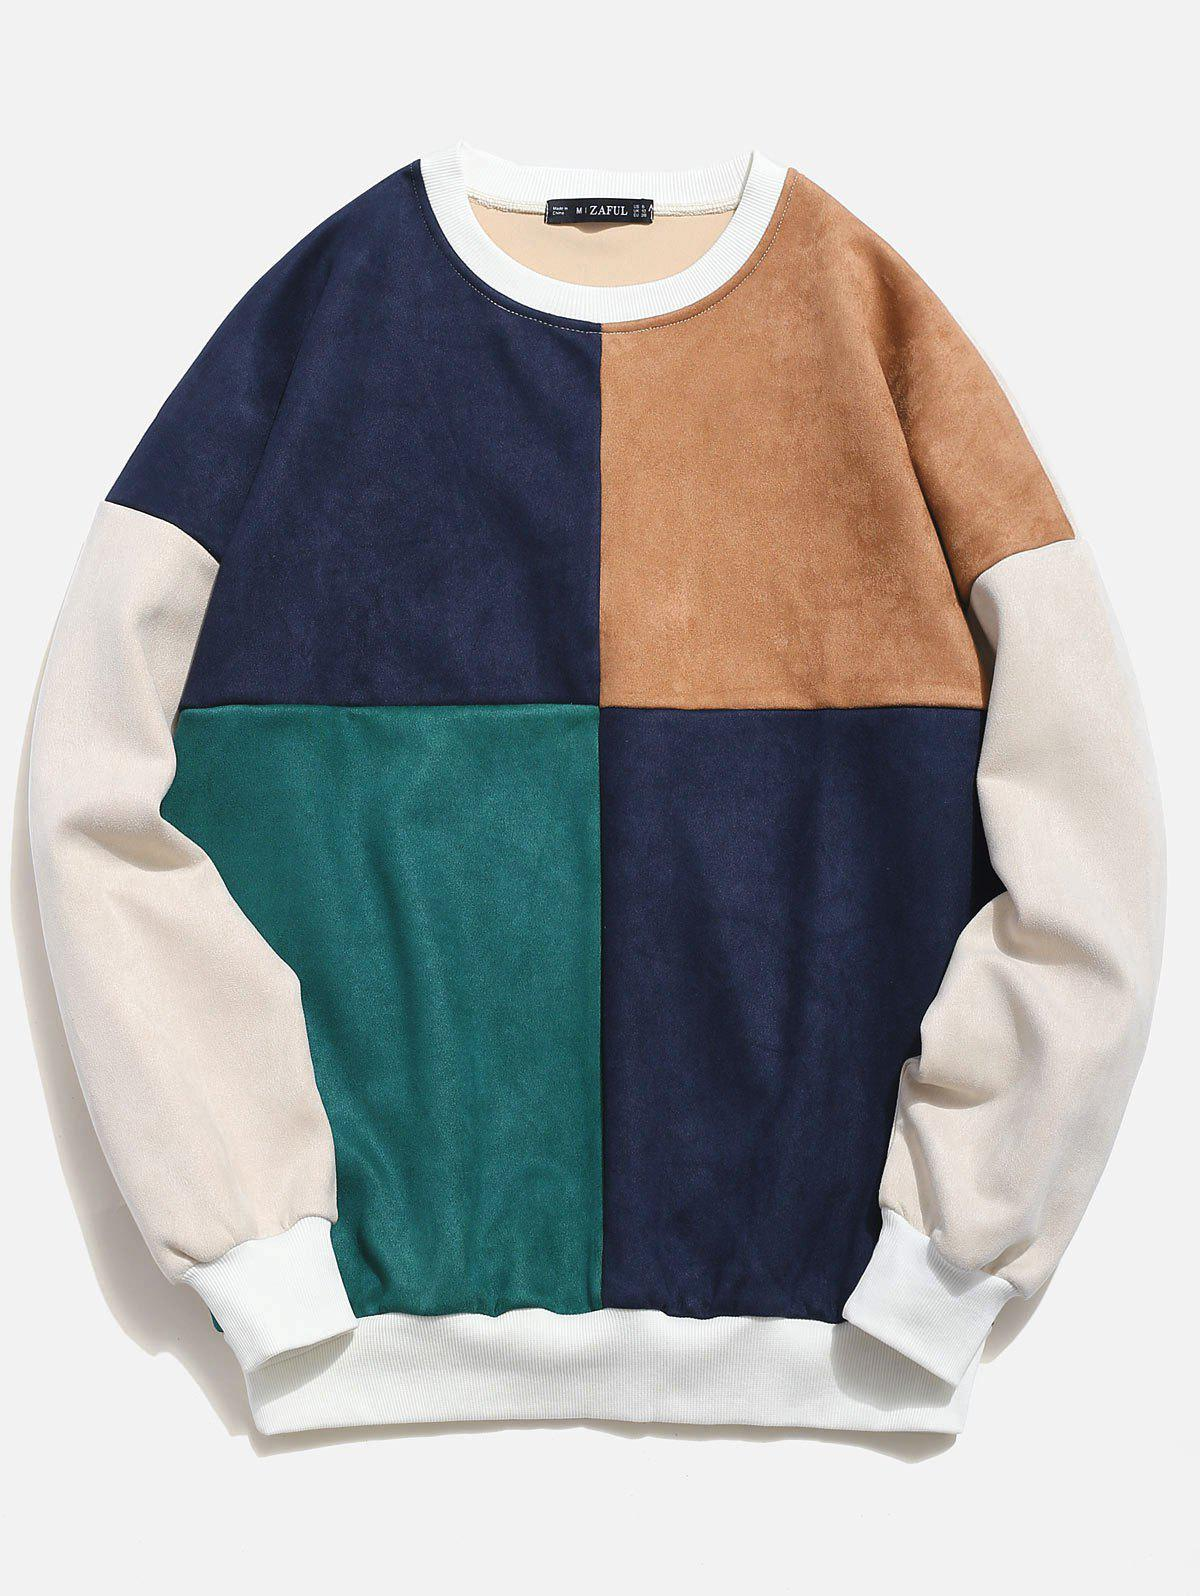 8a87f3cffb2b 2019 Zaful Color Block Splicing Suede Sweatshirt